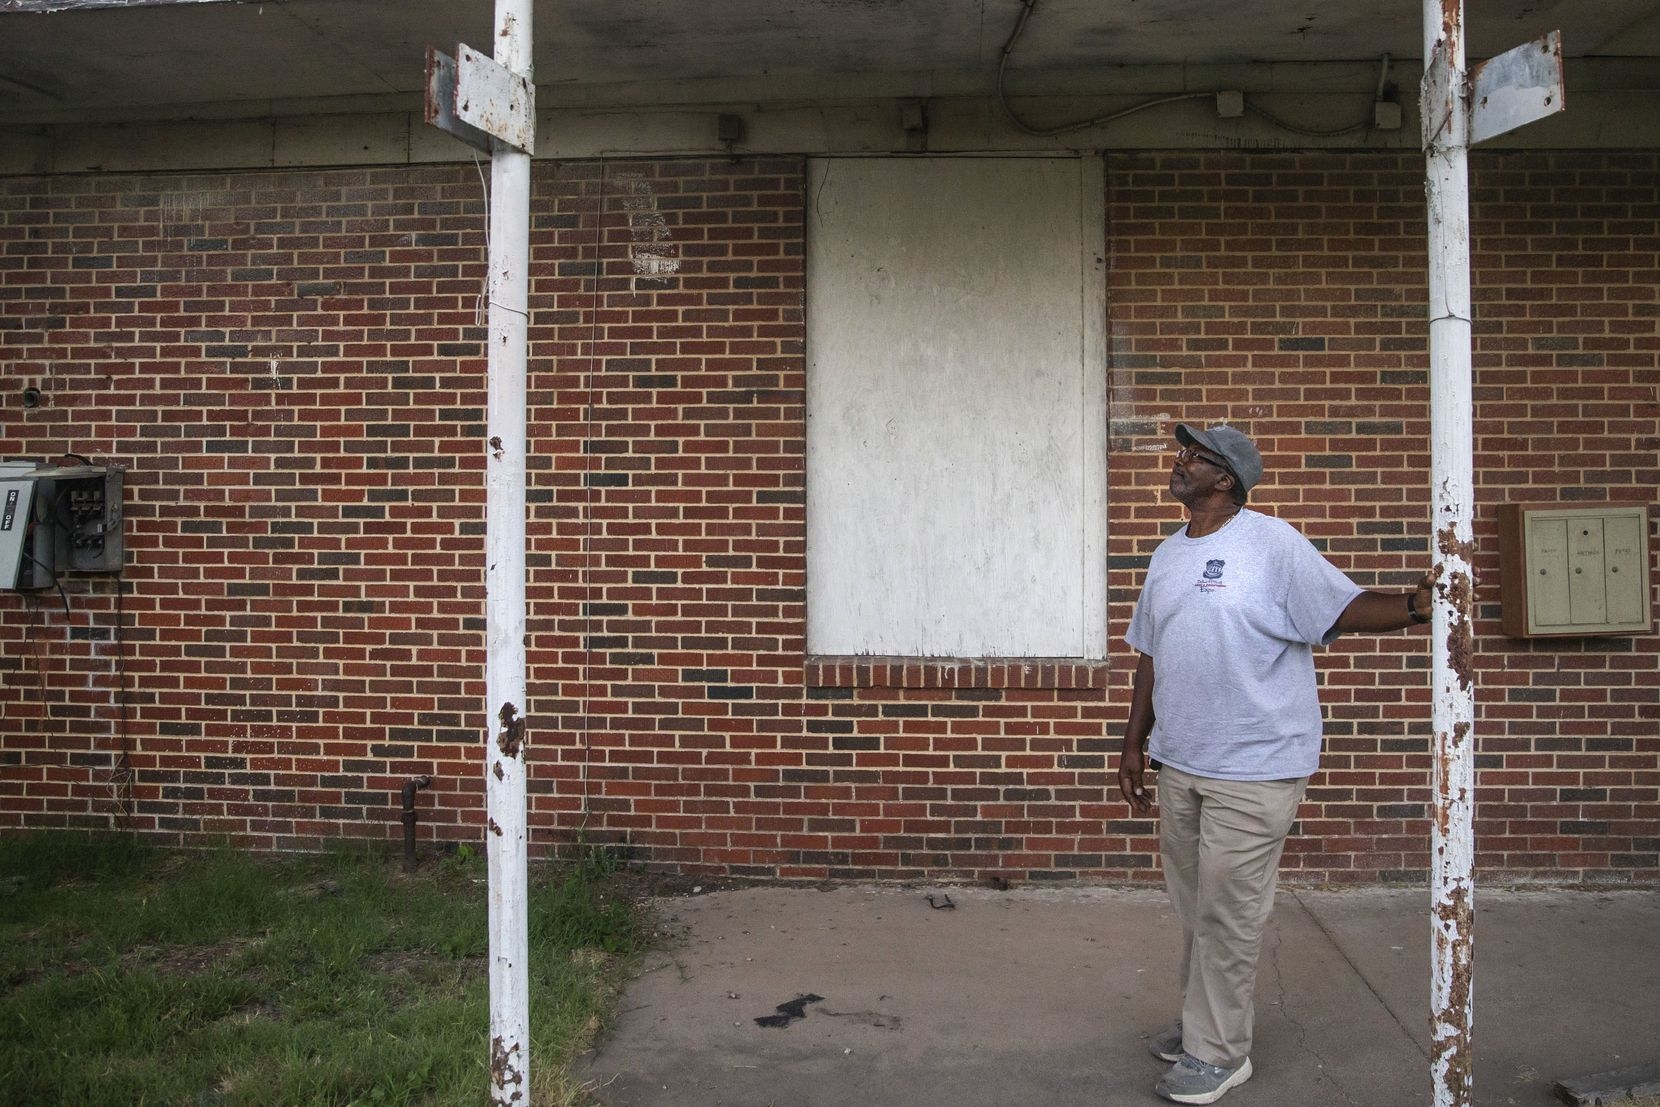 Longtime Joppa resident Edgar Green attended the now-closed Melissa Pierce School. Some in the Dallas neighborhood would like to see it turned into a community center.